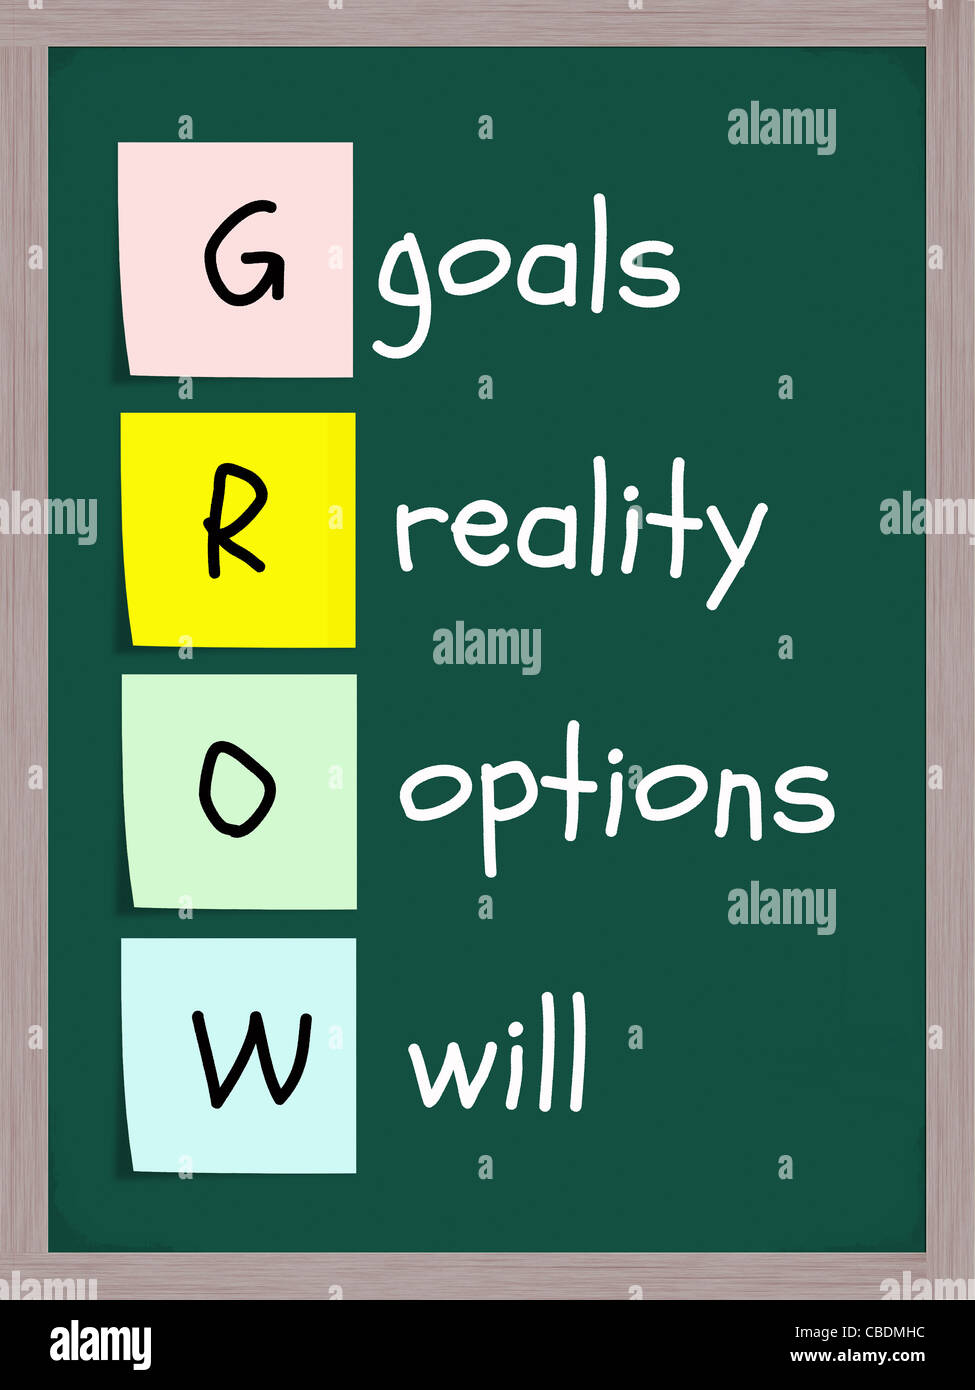 The acronym GROW, goals, reality, Options, Will, on colorful sticky notes on a chalkboard making a great concept. - Stock Image